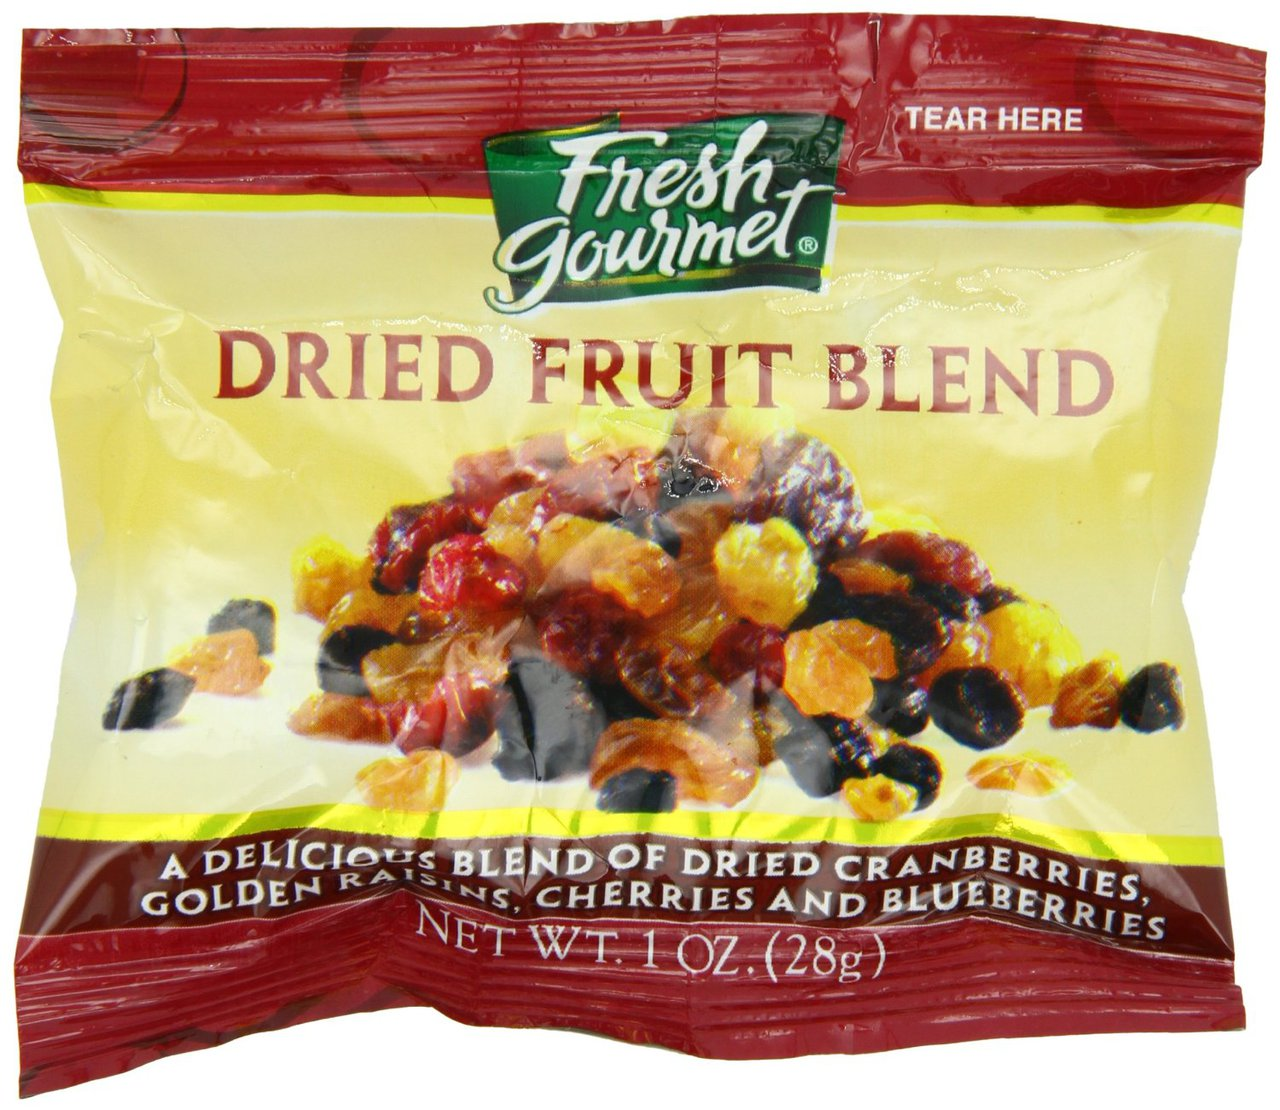 120 PACKS : Fresh Gourmet Dried Fruit Blend For Oatmeal, 120 Count by